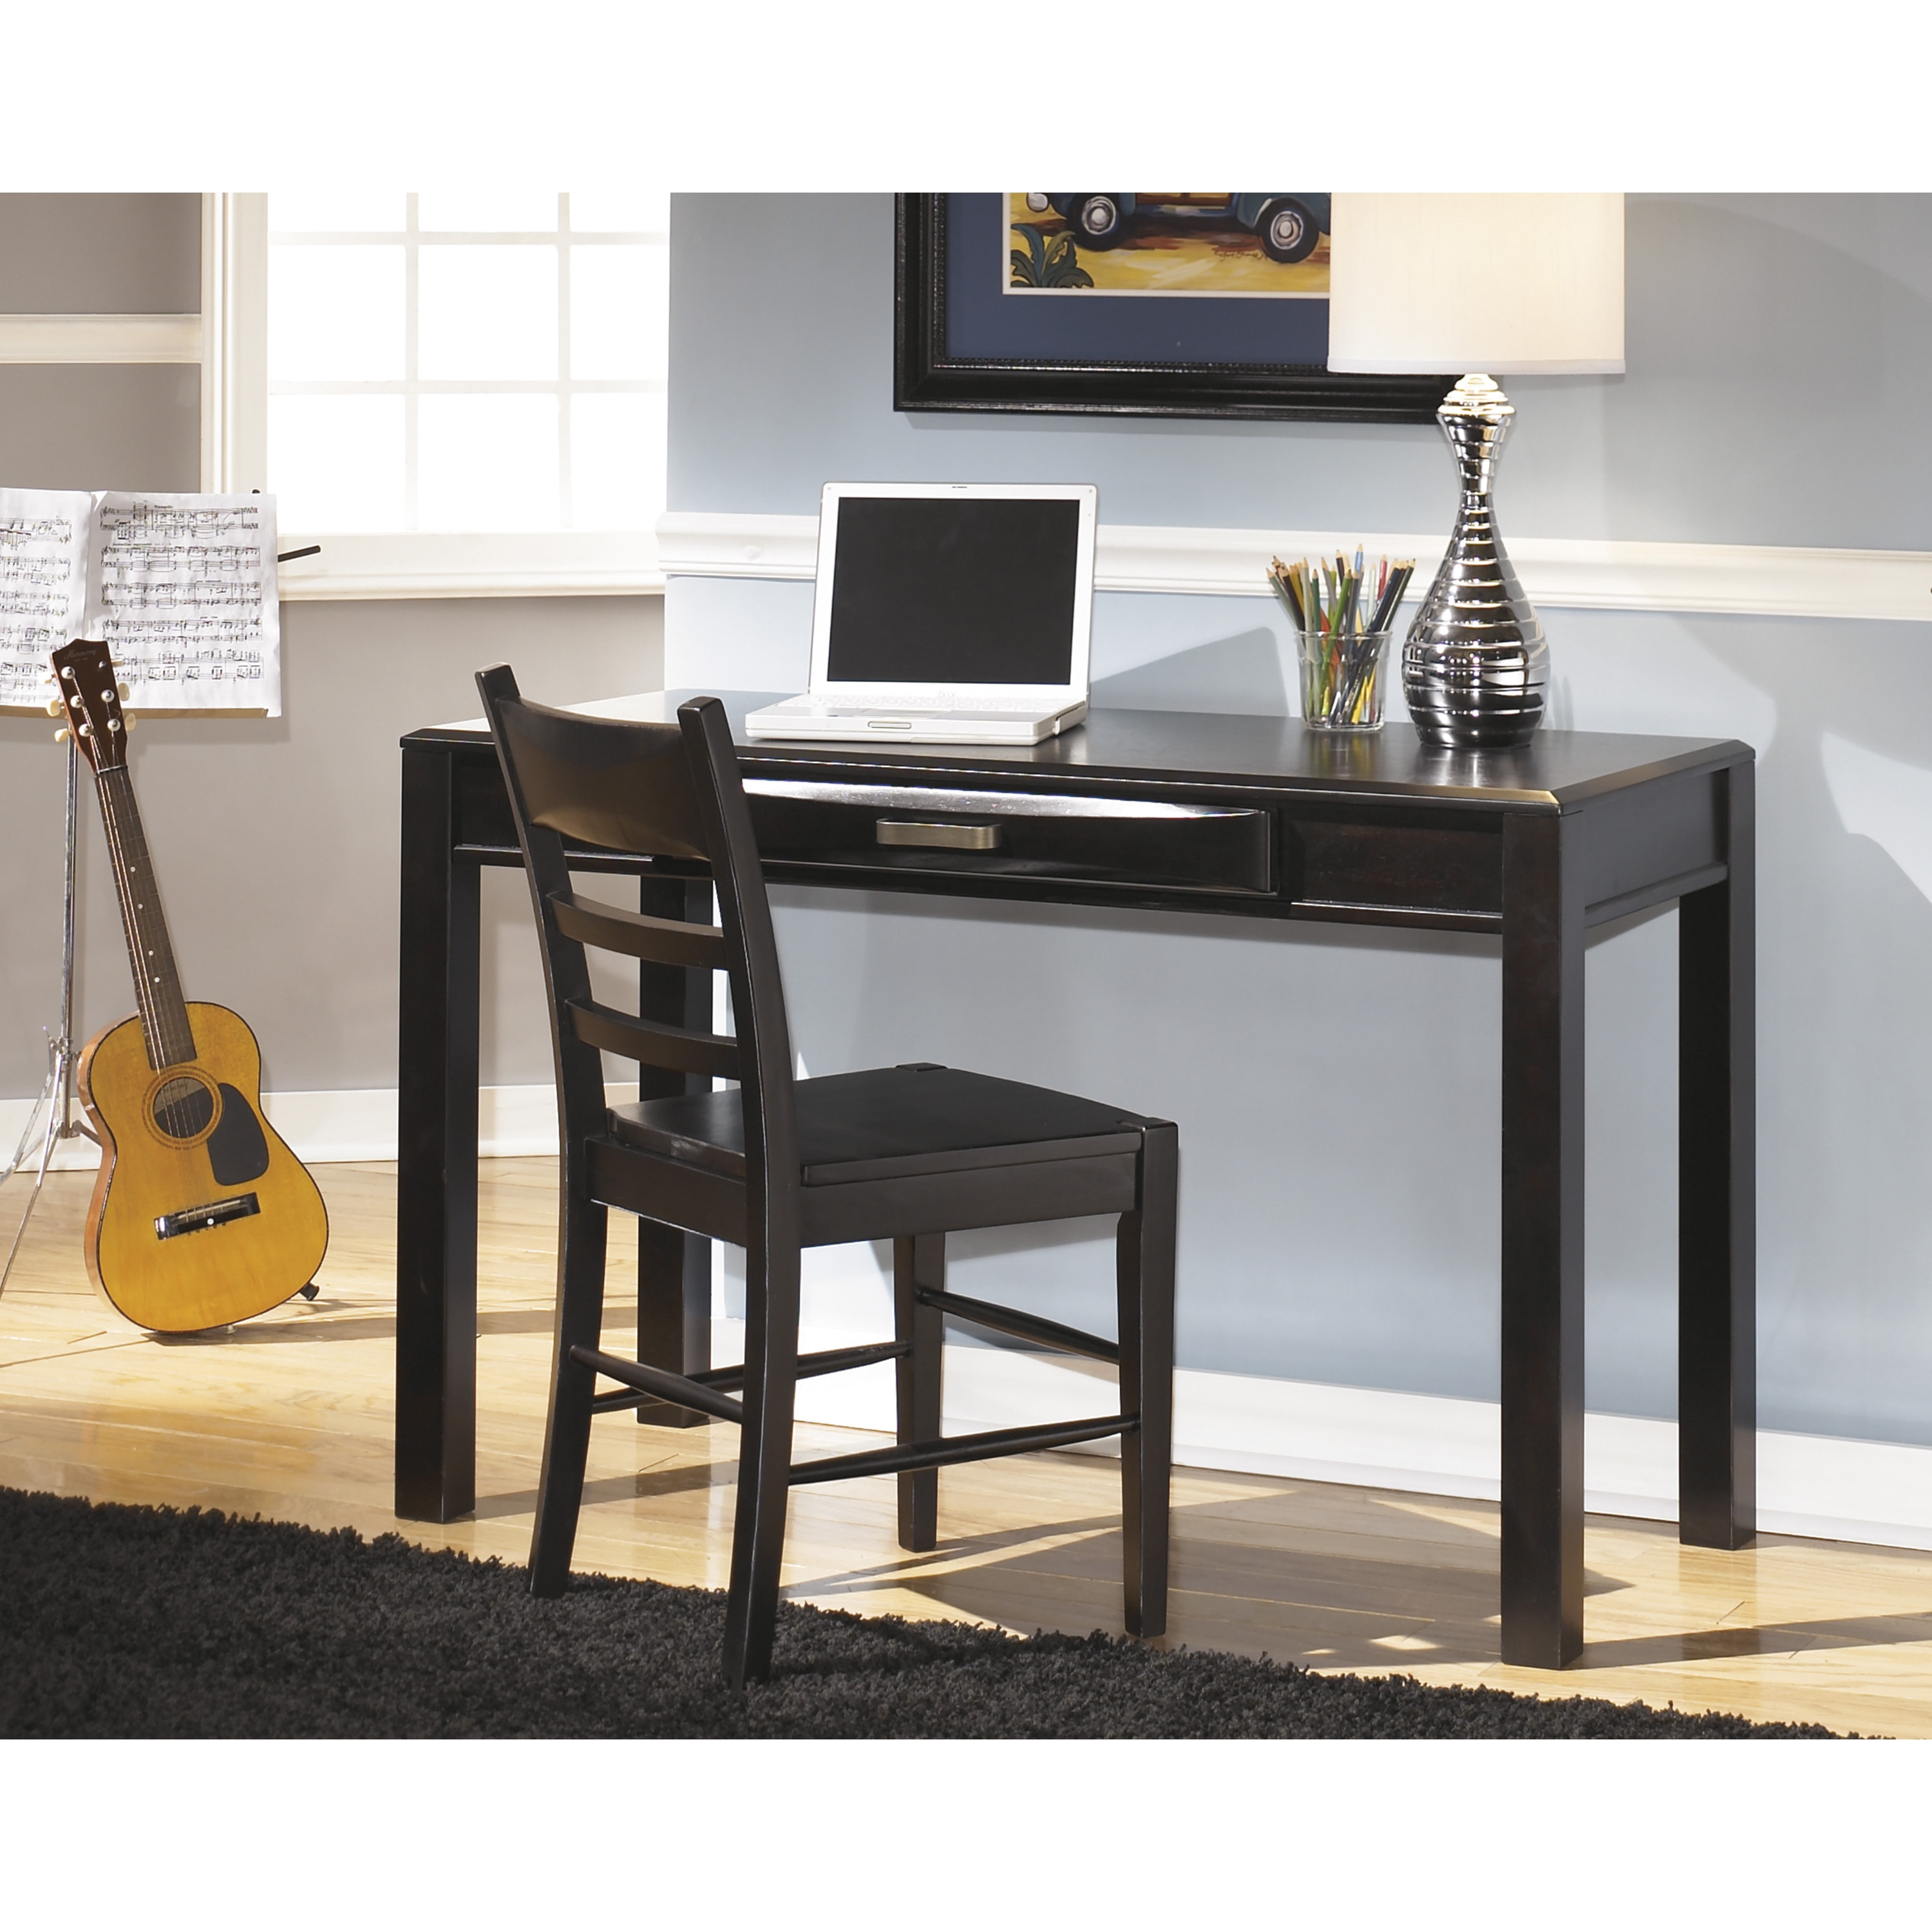 Signature Designs by Ashley Kira Black Bedroom Desk and Chair